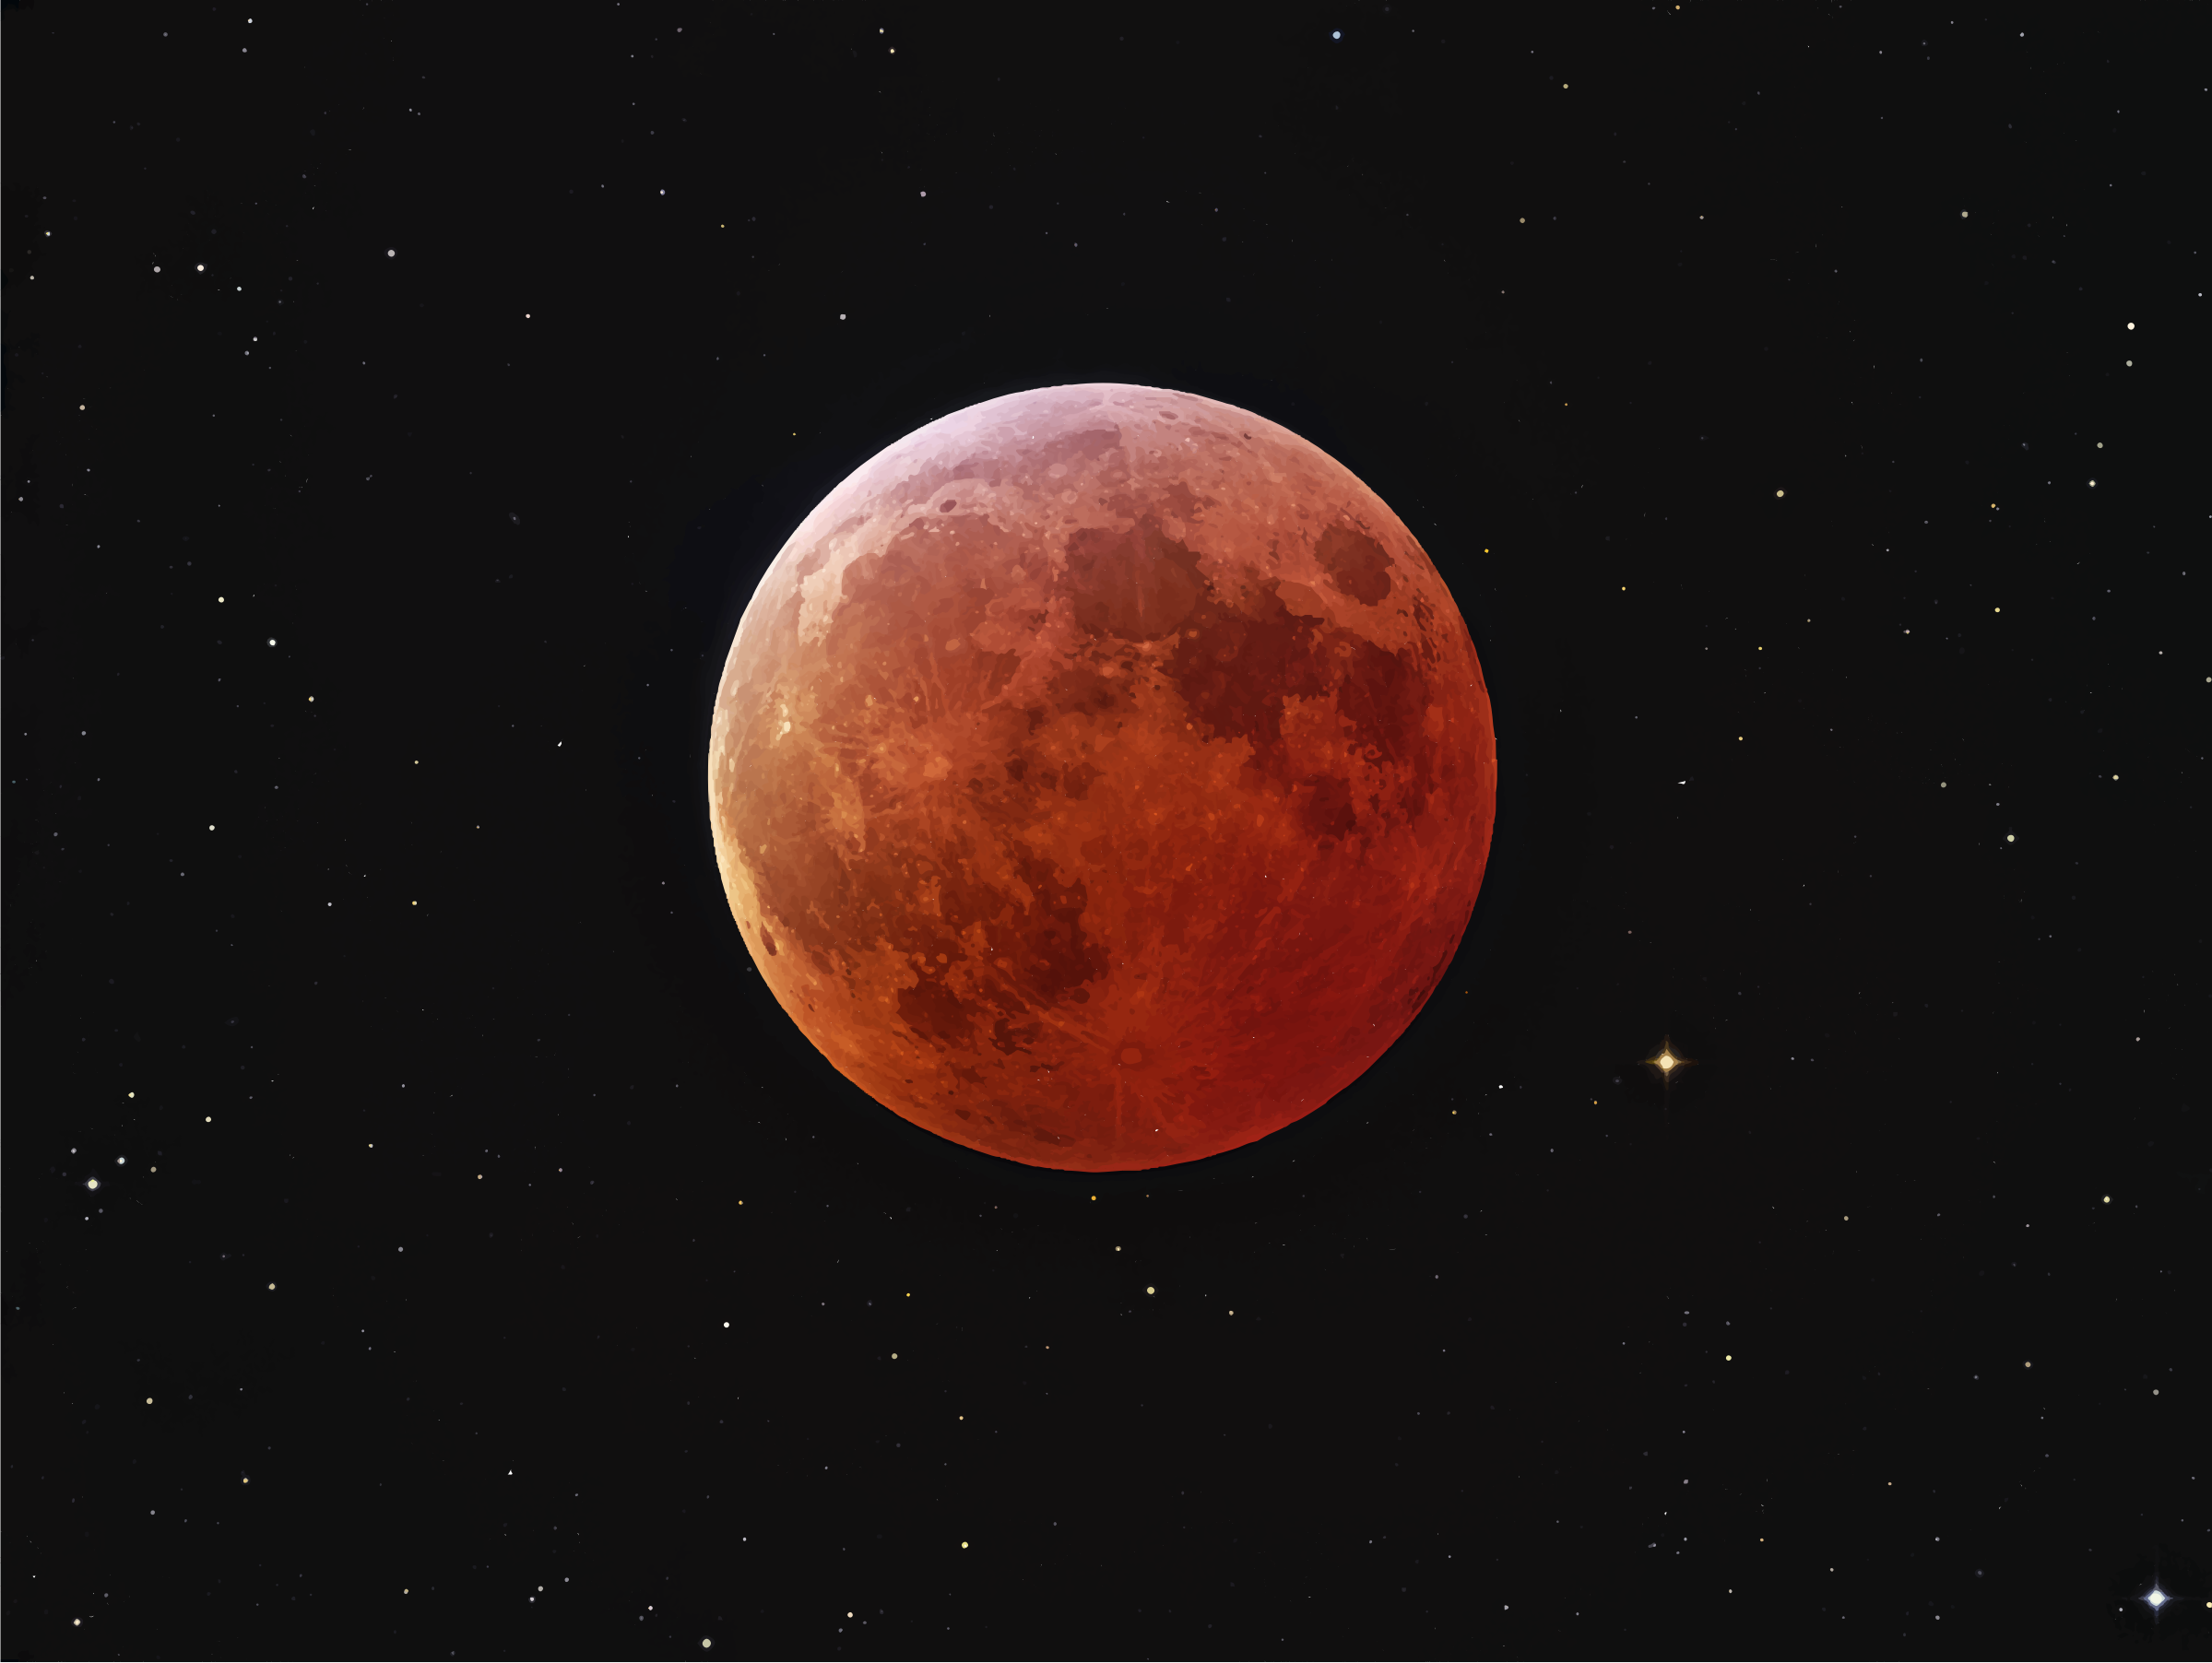 Lunar Eclipse clipart #6, Download drawings